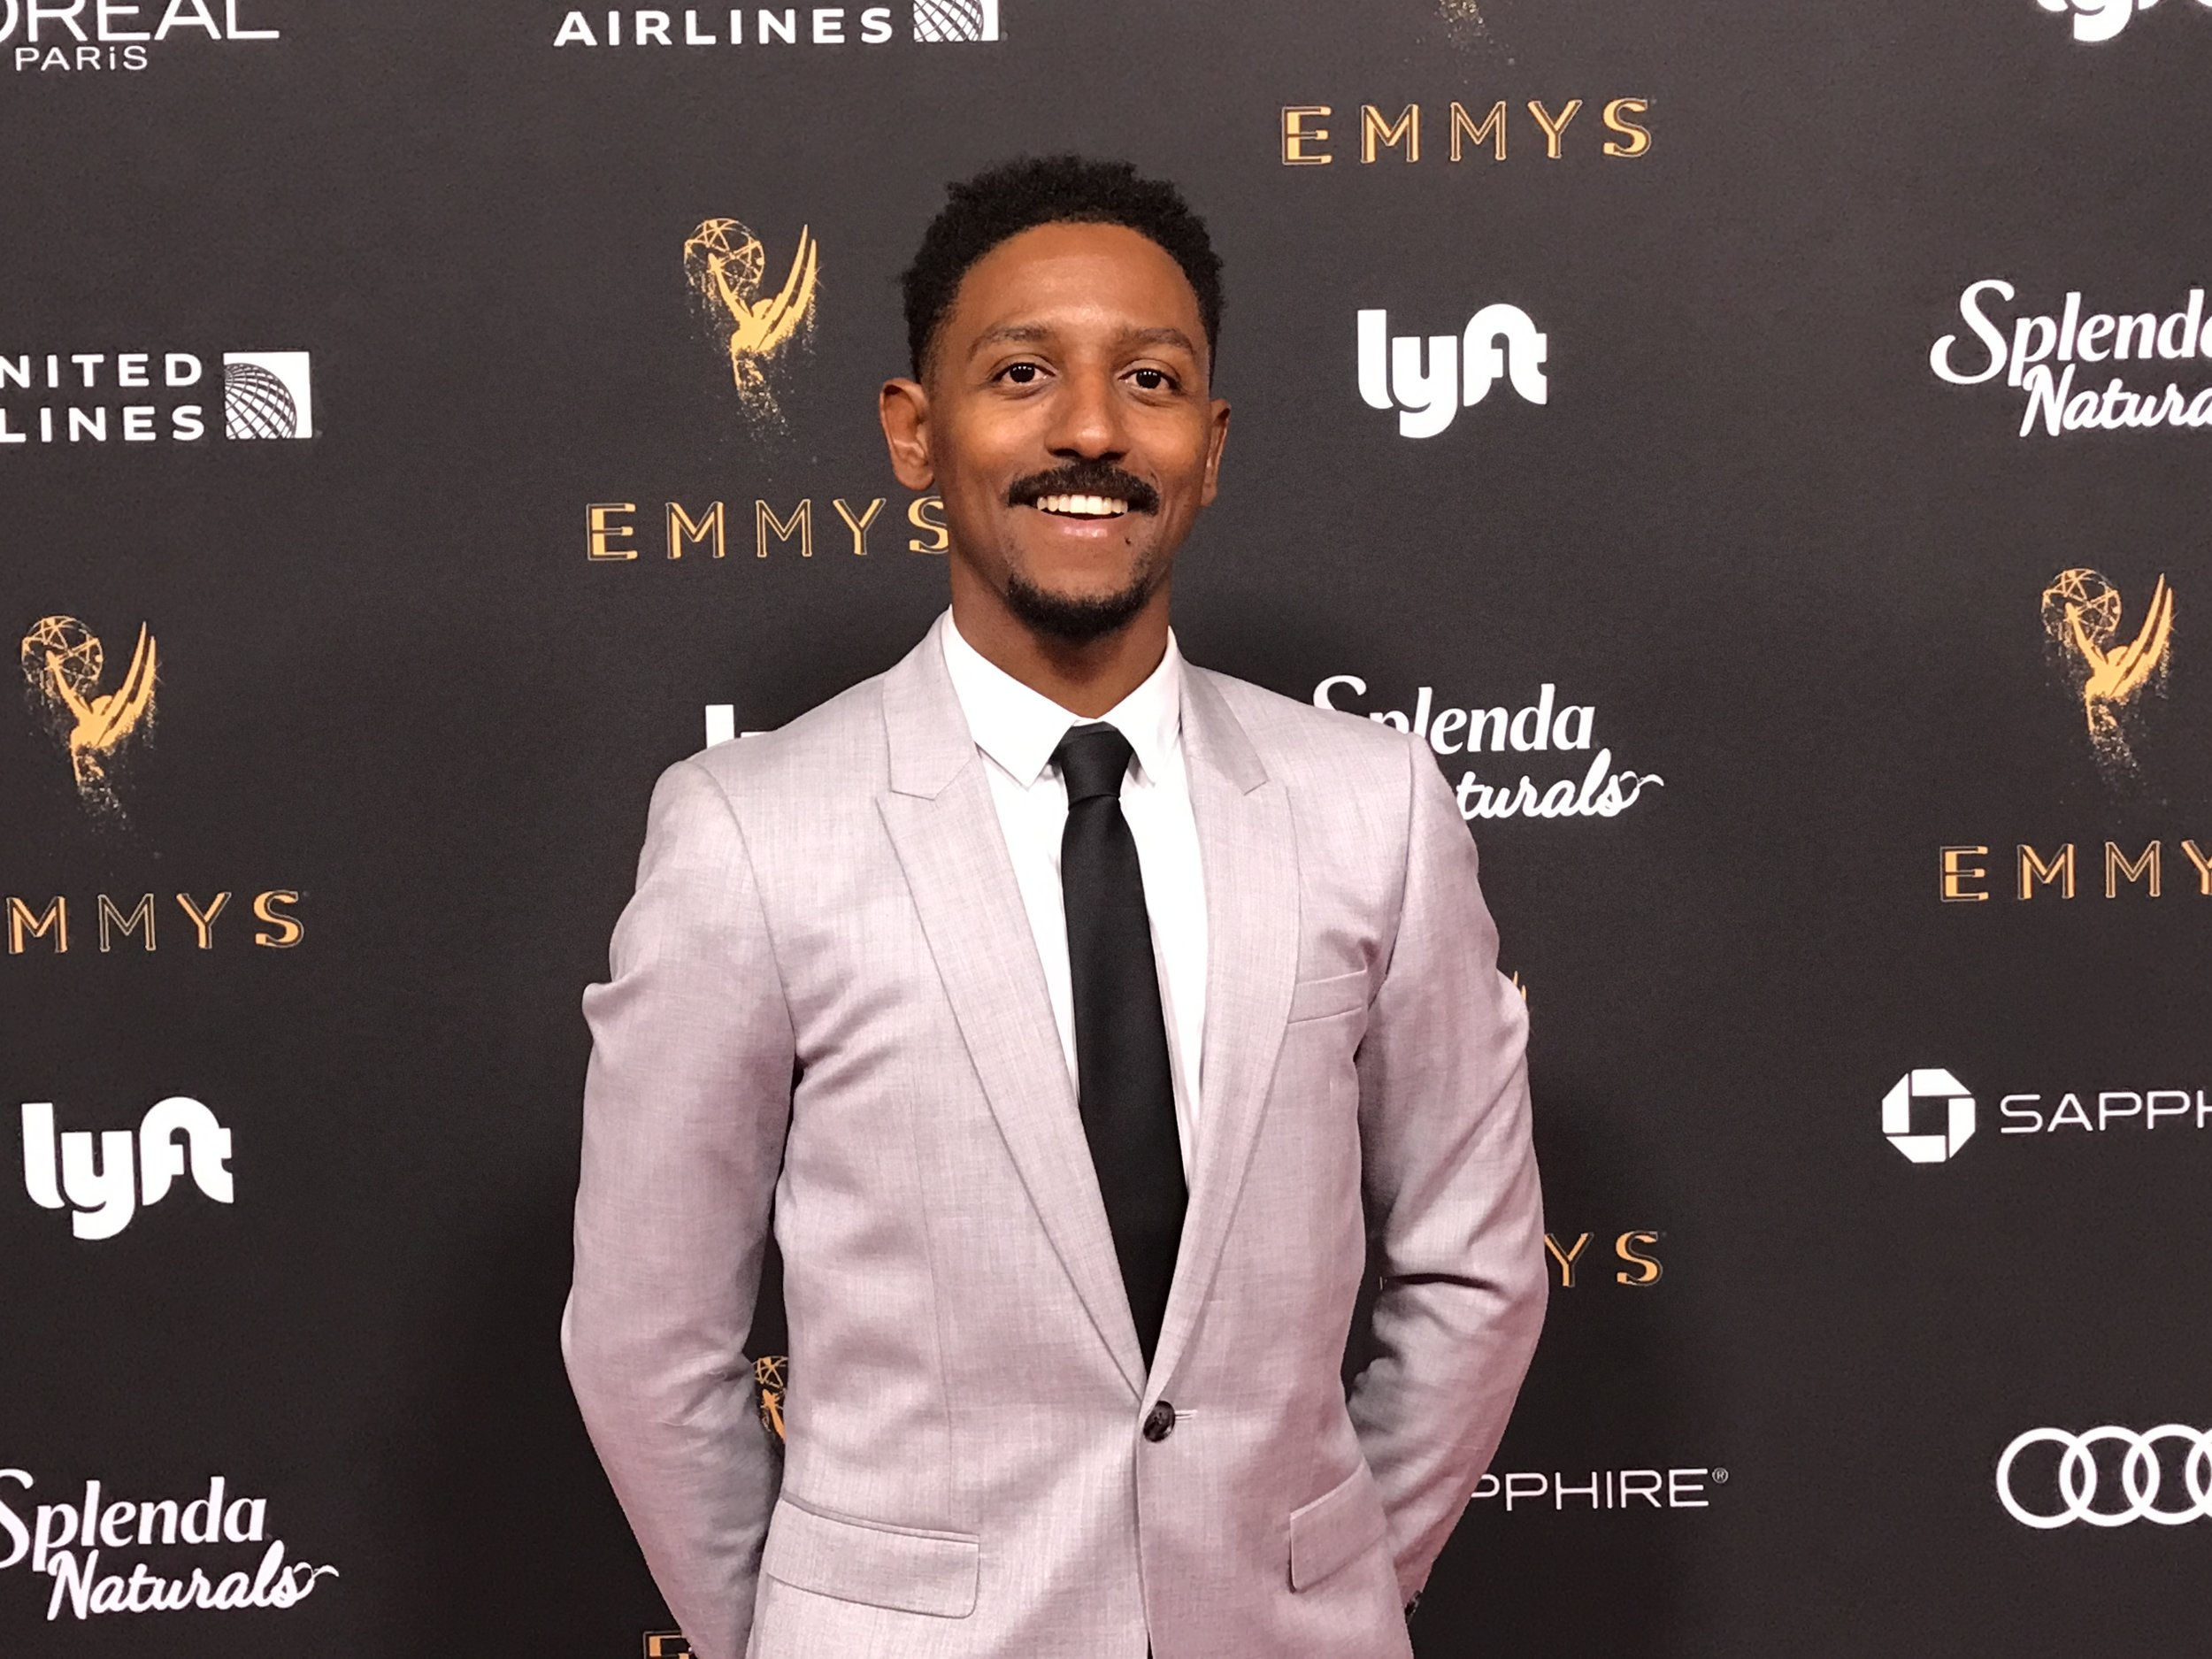 At the Emmys Performers Reception in 2017.